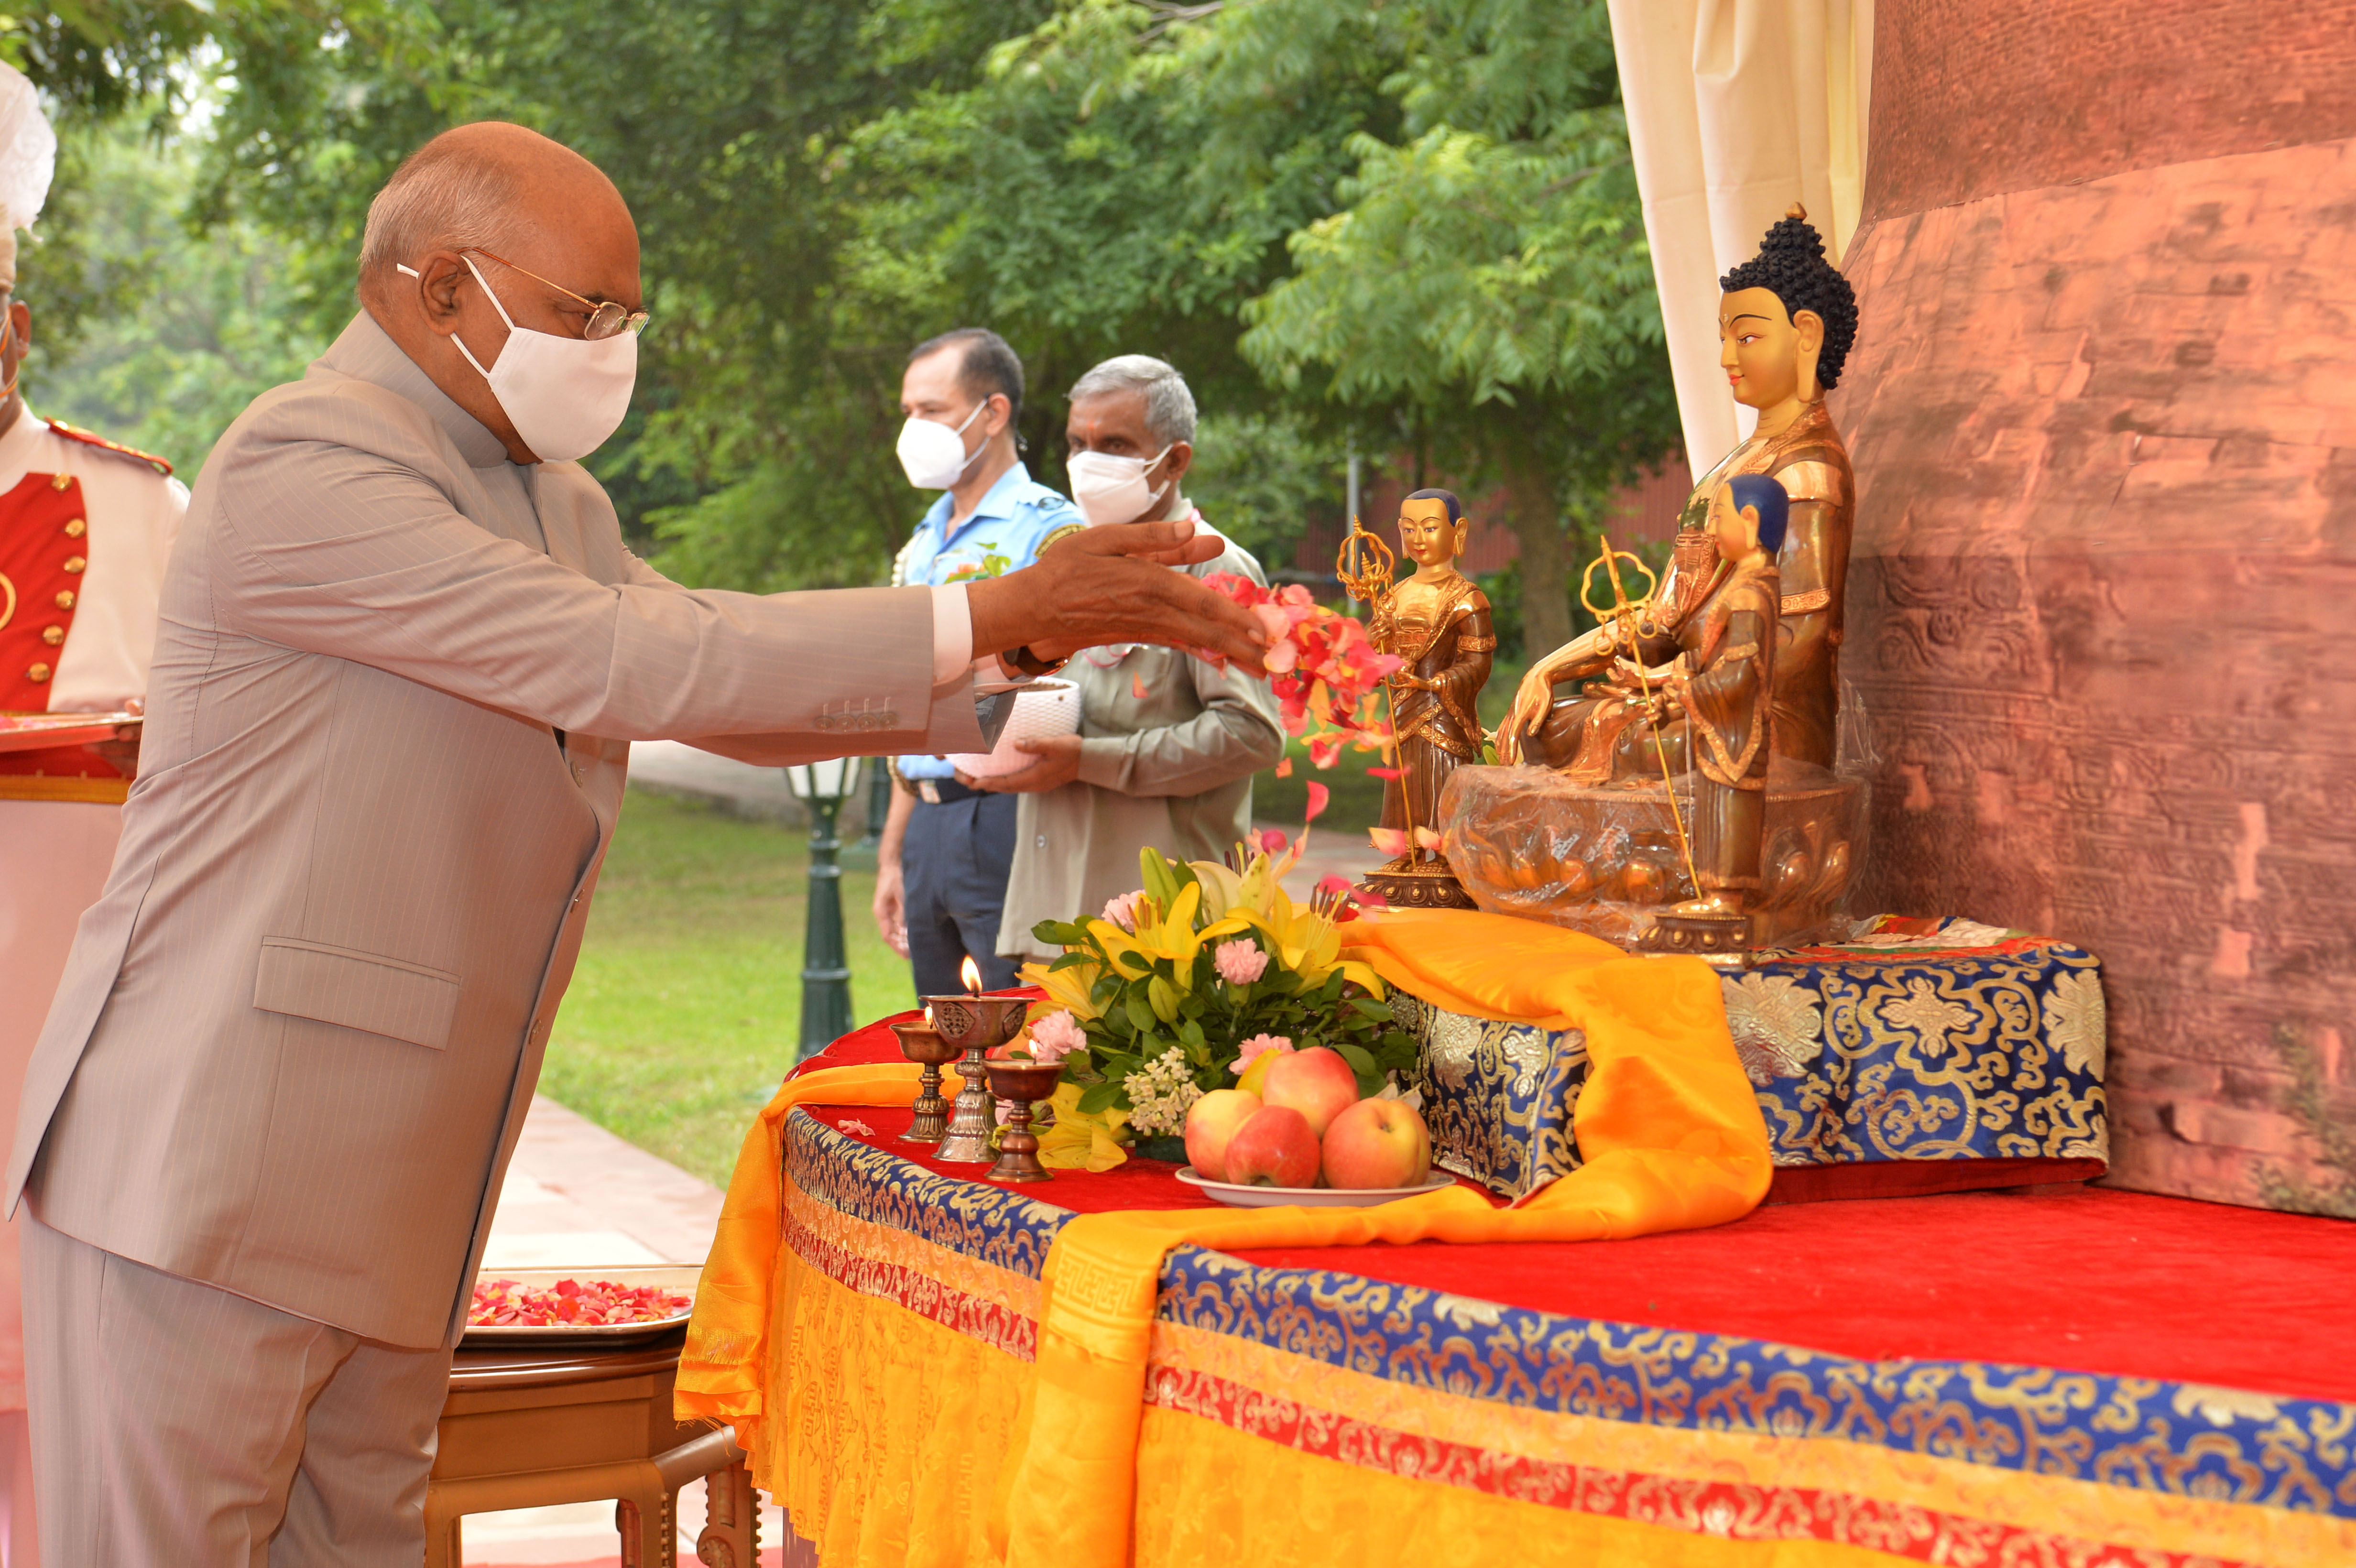 Application of Buddhist Values and Principles important for peaceful world order, President Kovind